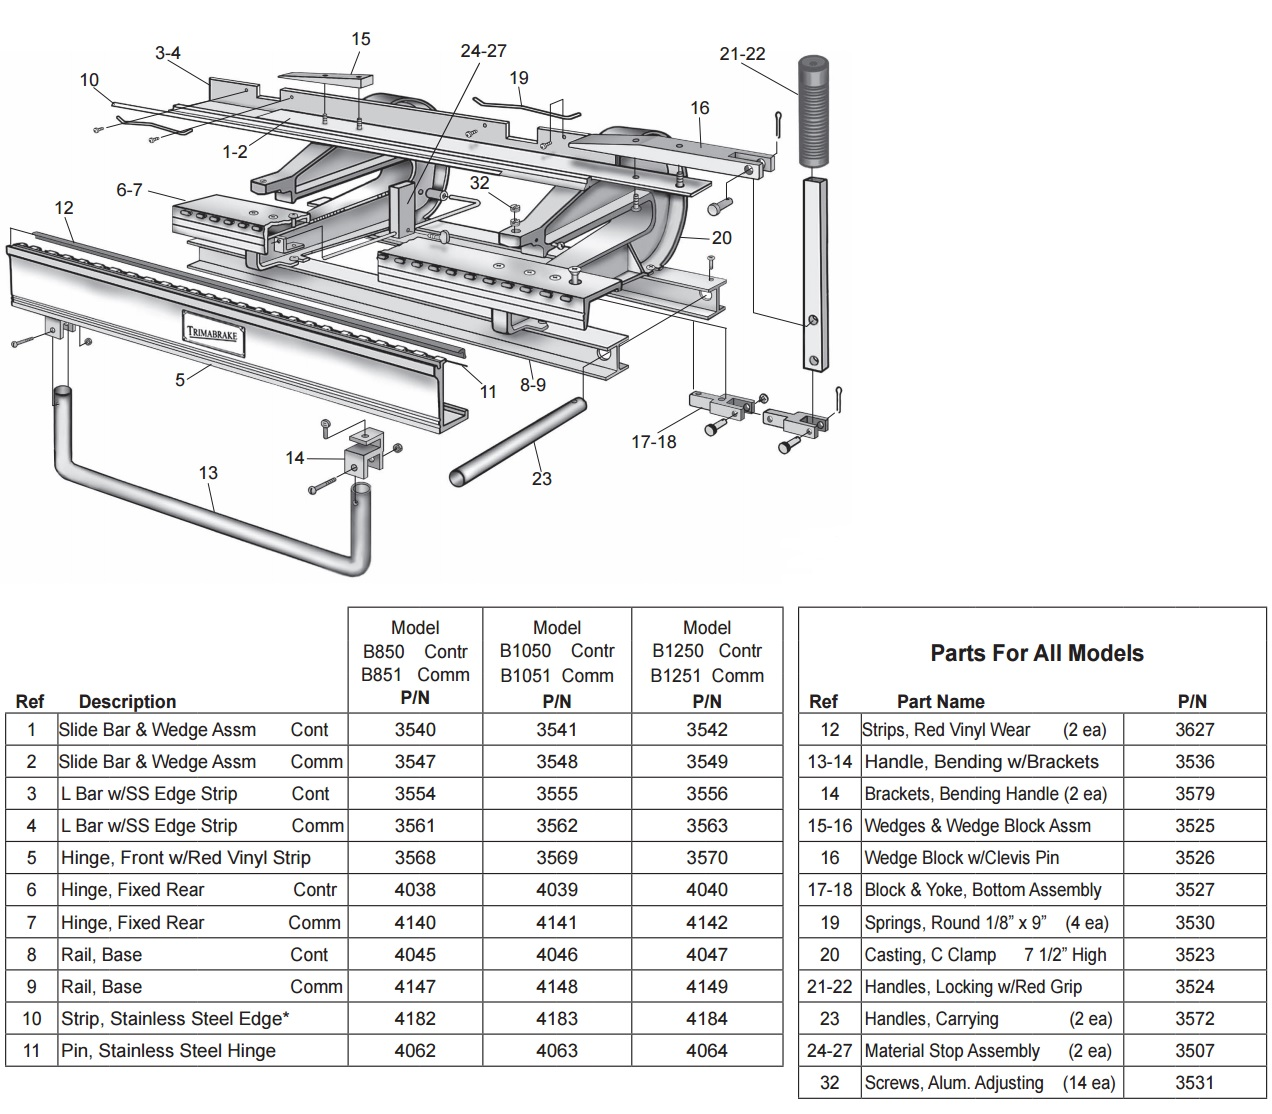 Van mark trim a brake i from buymbs specifications blown up diagram pooptronica